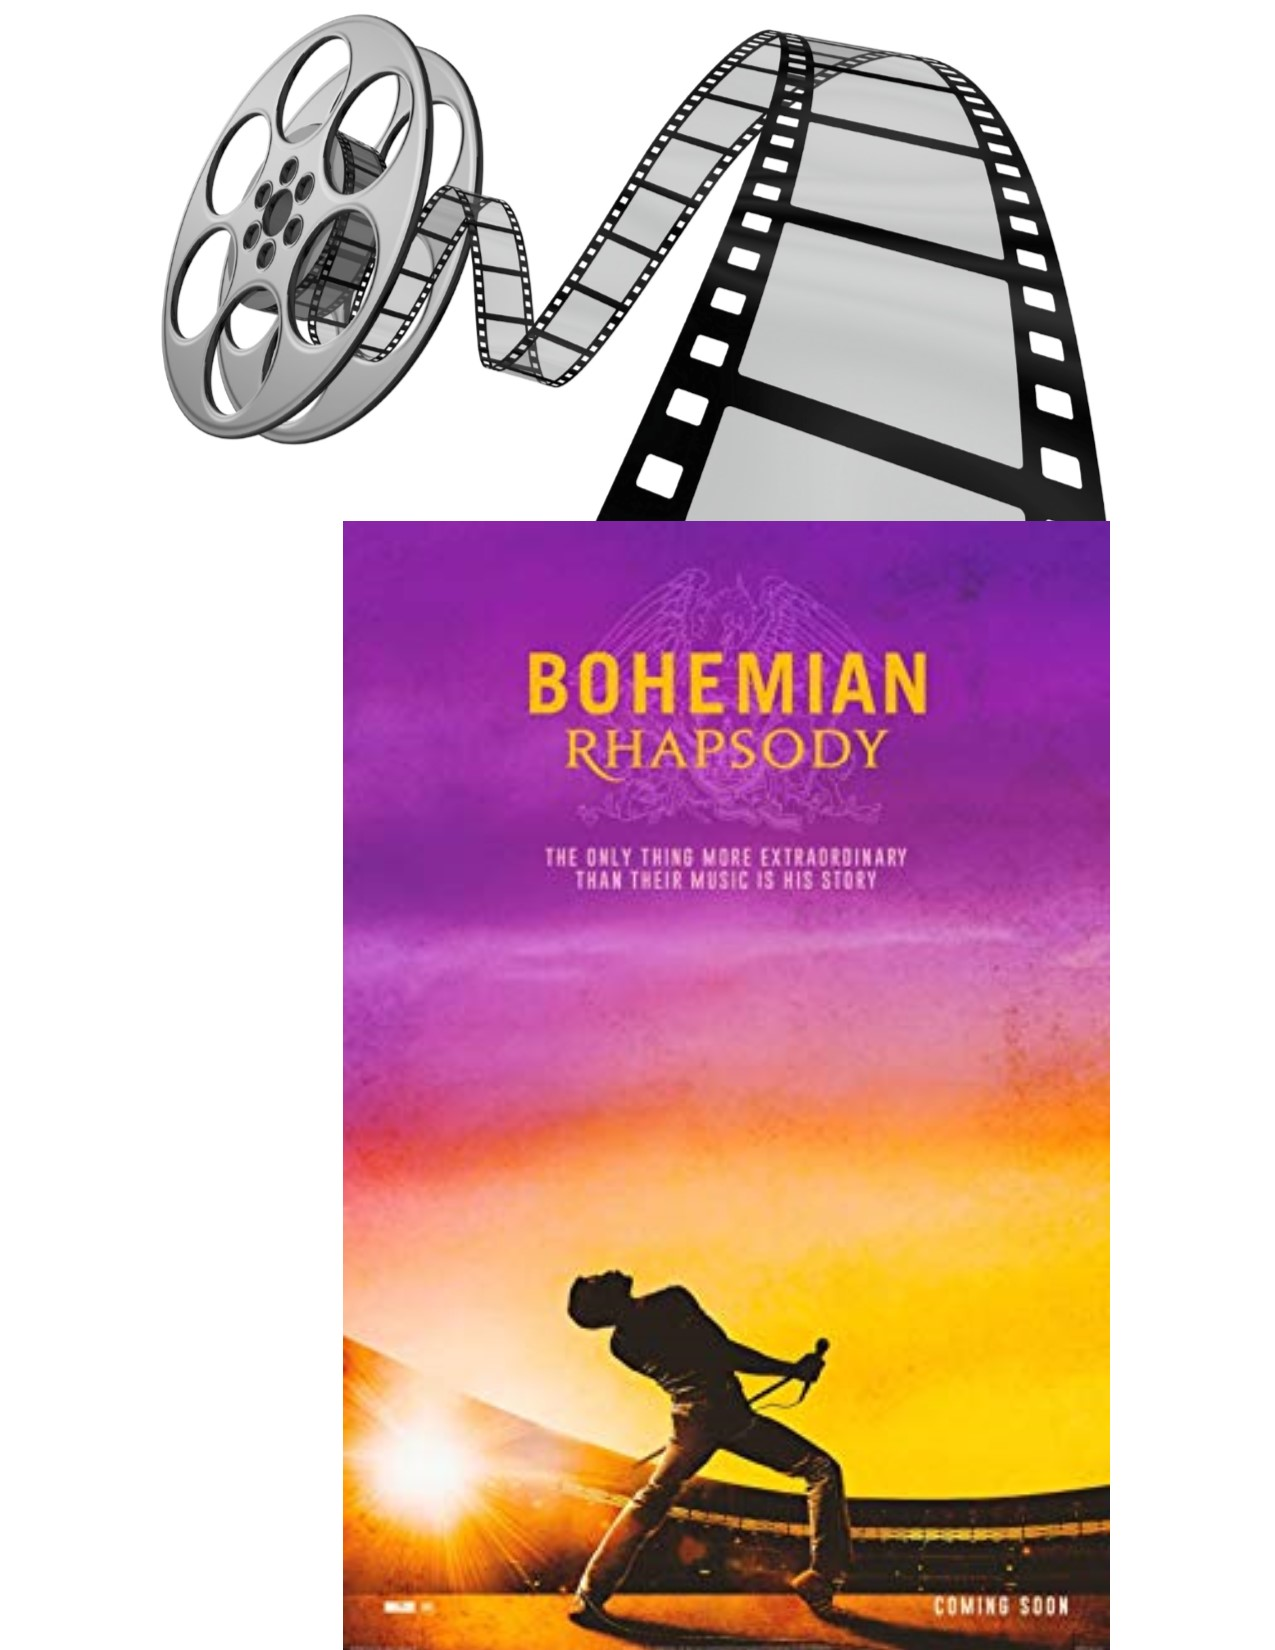 New Movie Thursday - Bohemian Rhapsody